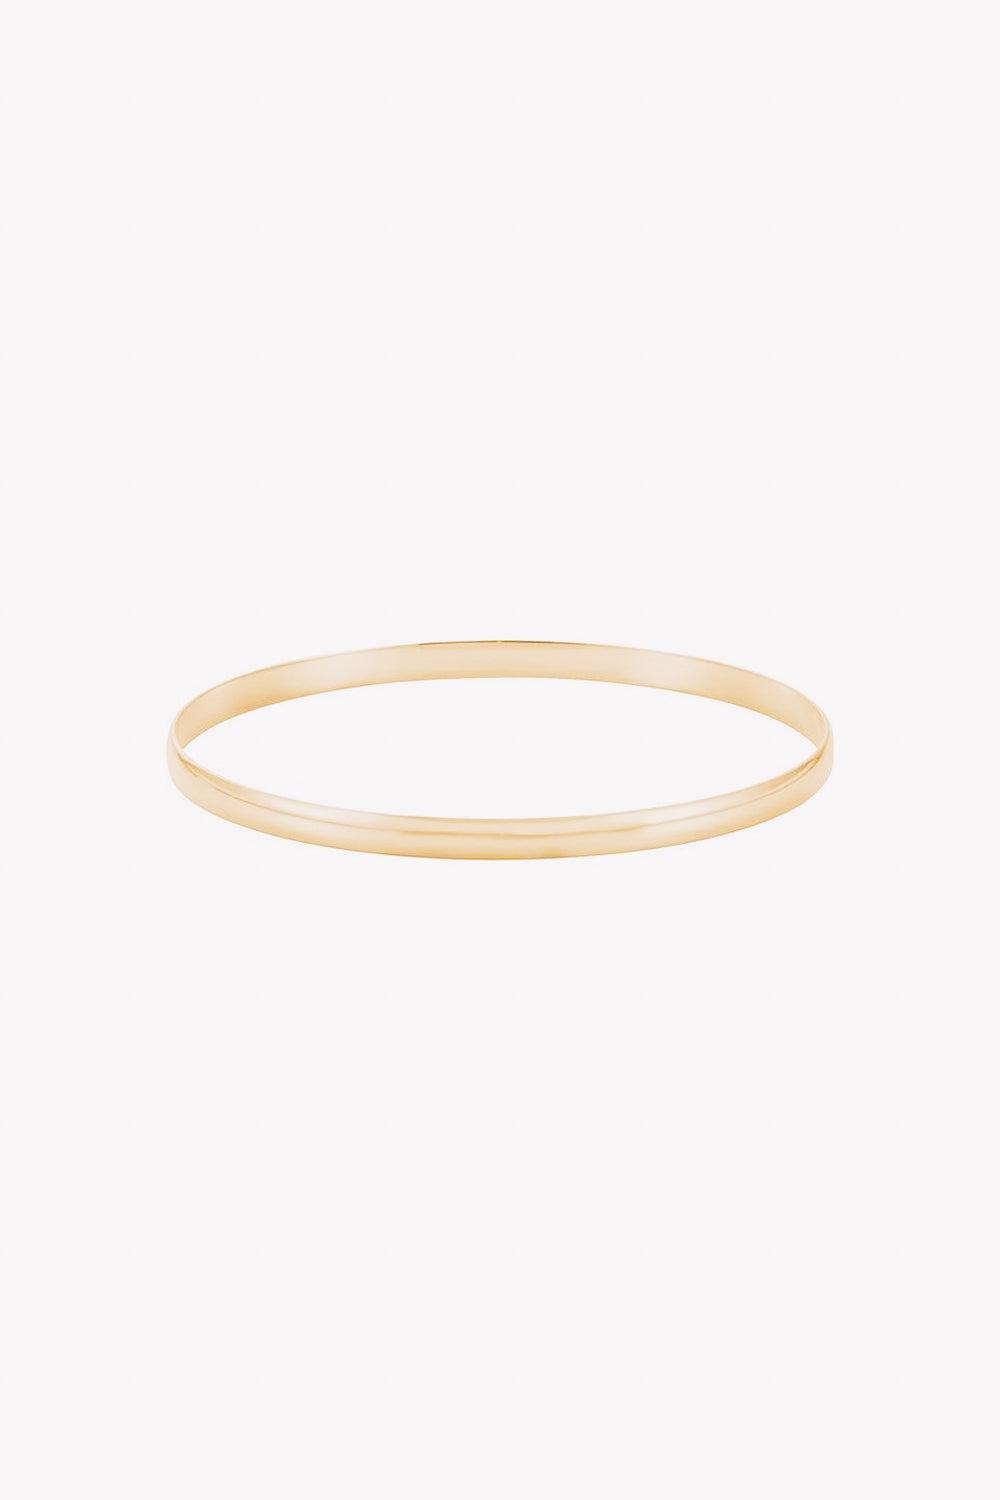 4 mm Half Round Bangle | 14K Gold | Janna Conner